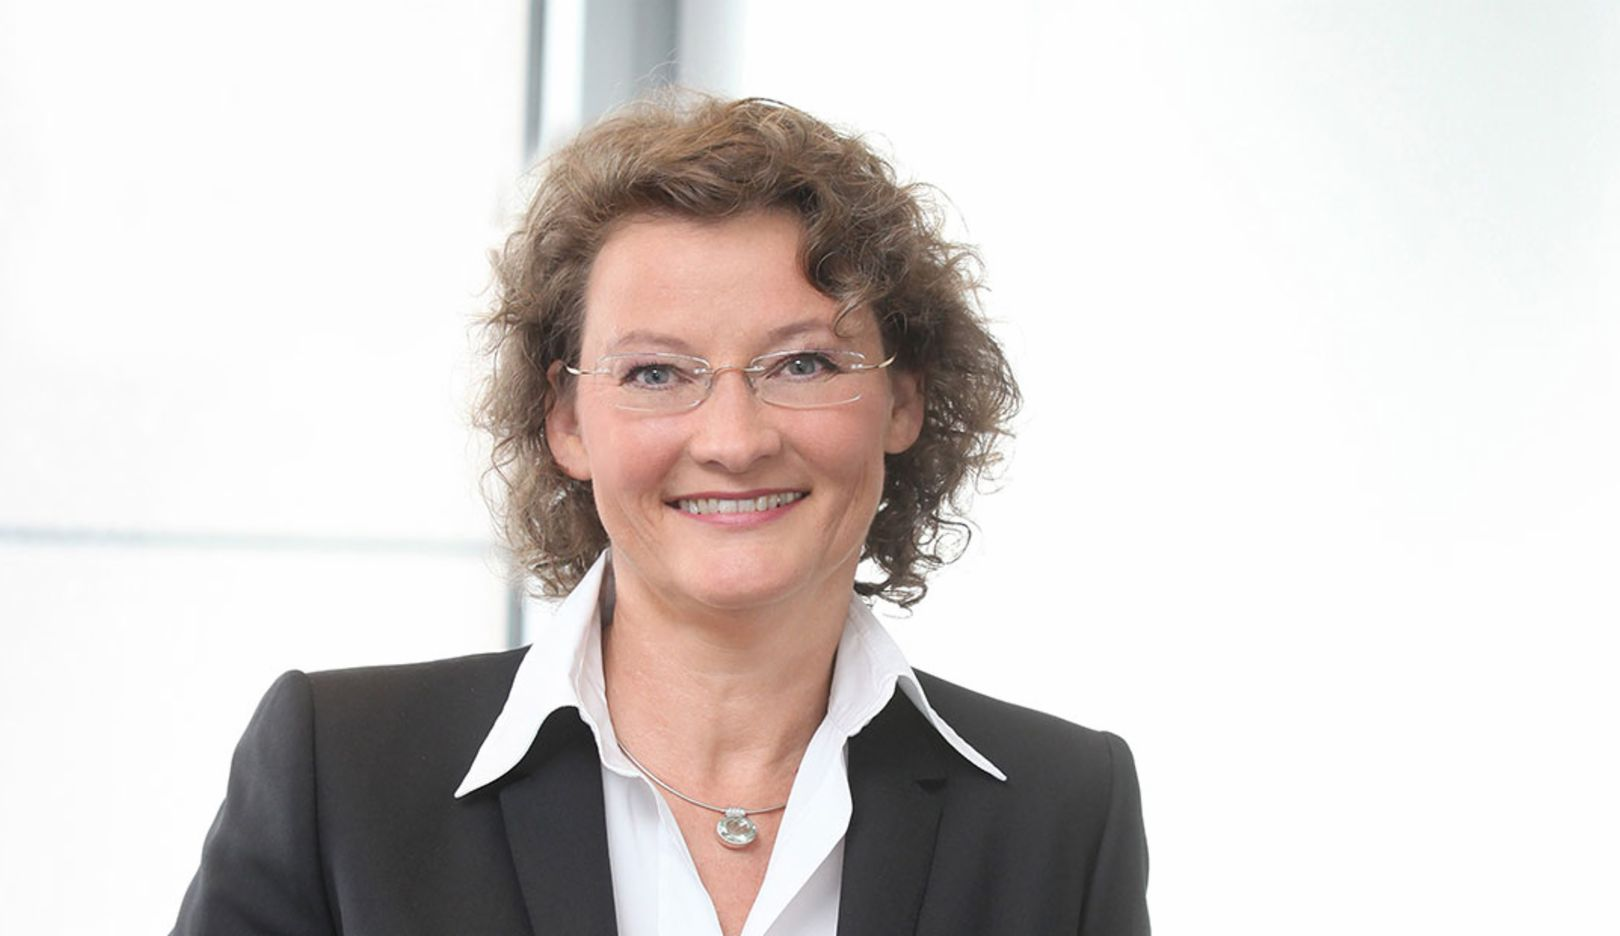 Dr Elke Eller, HR Executive Director of TUI AG and President of the German Federal Association of Human Resources Managers, 2017, Porsche Consulting GmbH